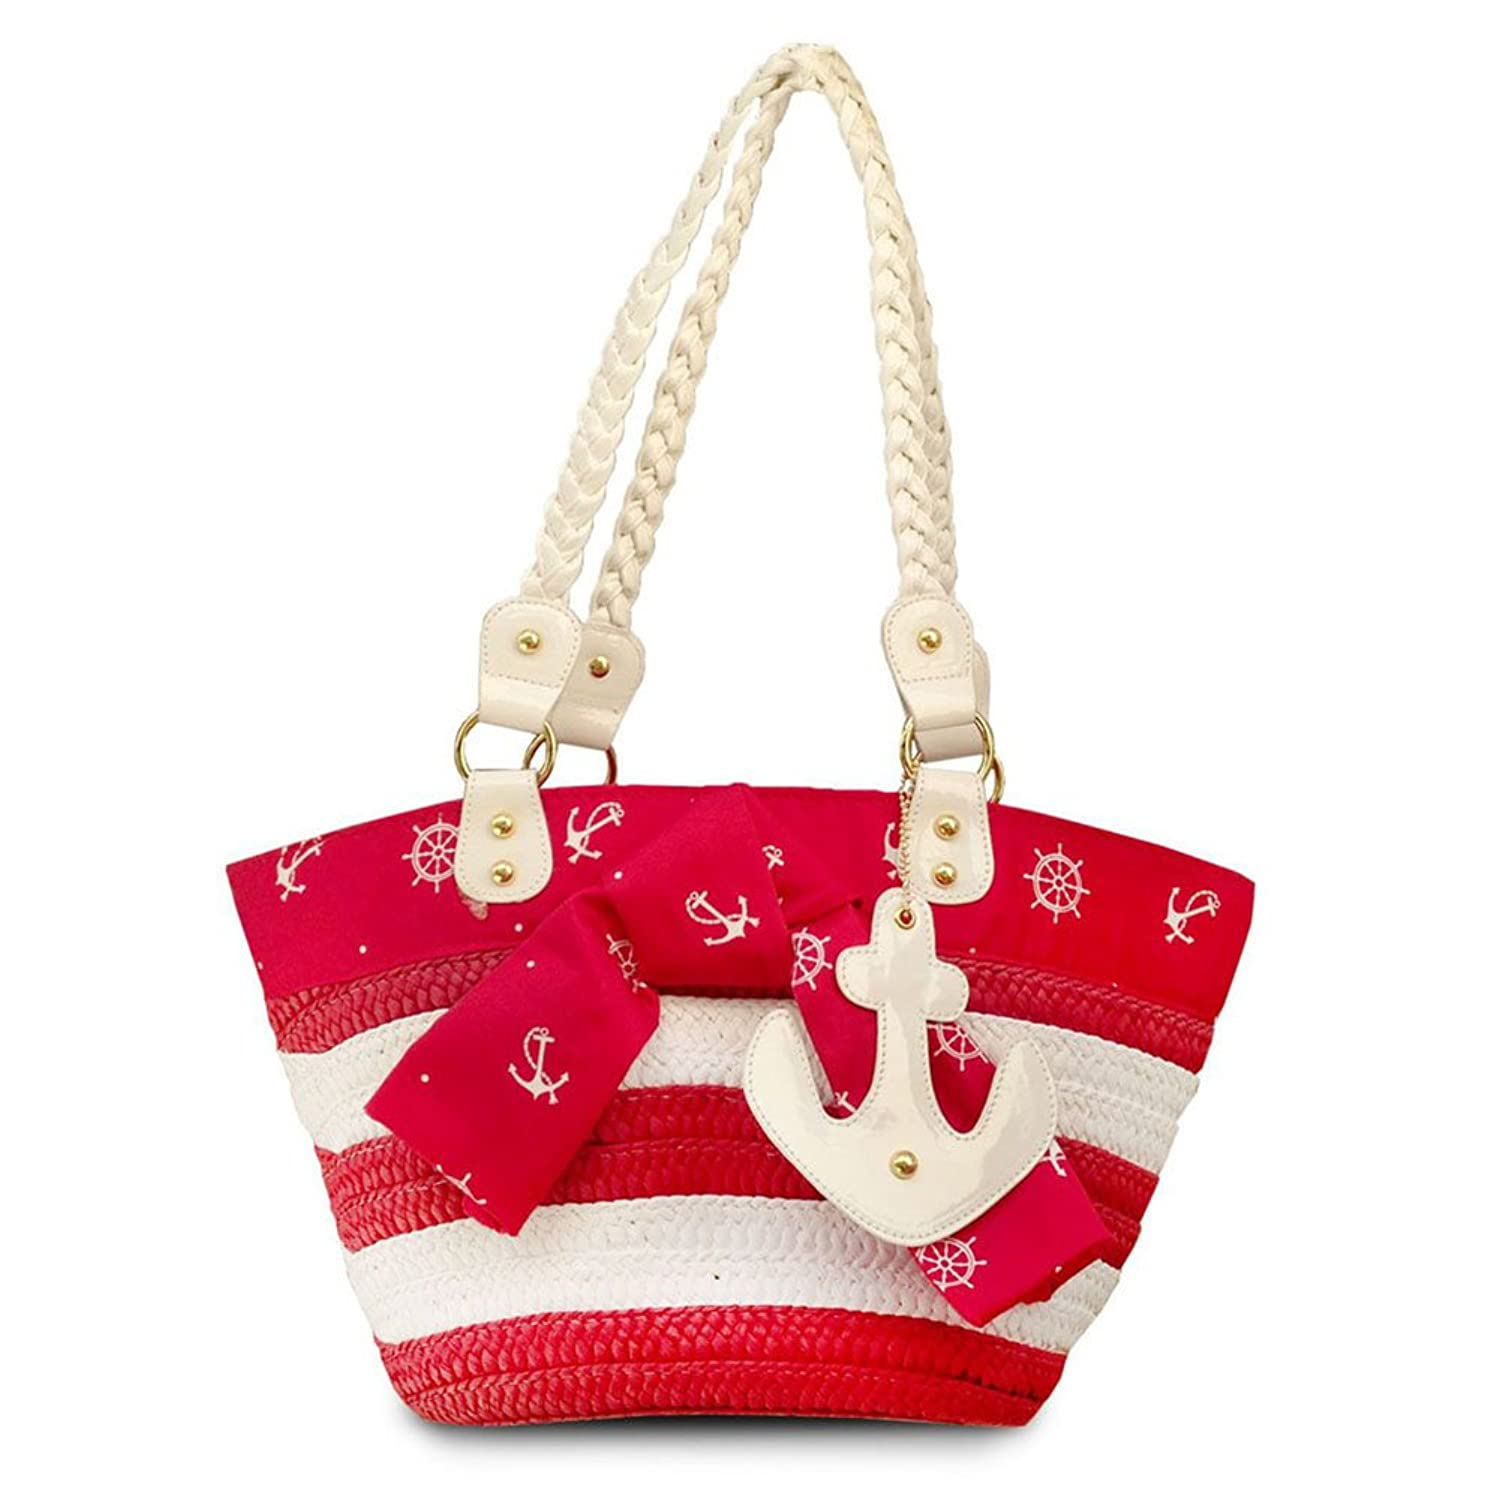 1950s Handbags, Purses, and Evening Bag Styles Red Rockabilly Voodoo Vixen Anchors Away Wicker Tote Bag Purse $44.99 AT vintagedancer.com